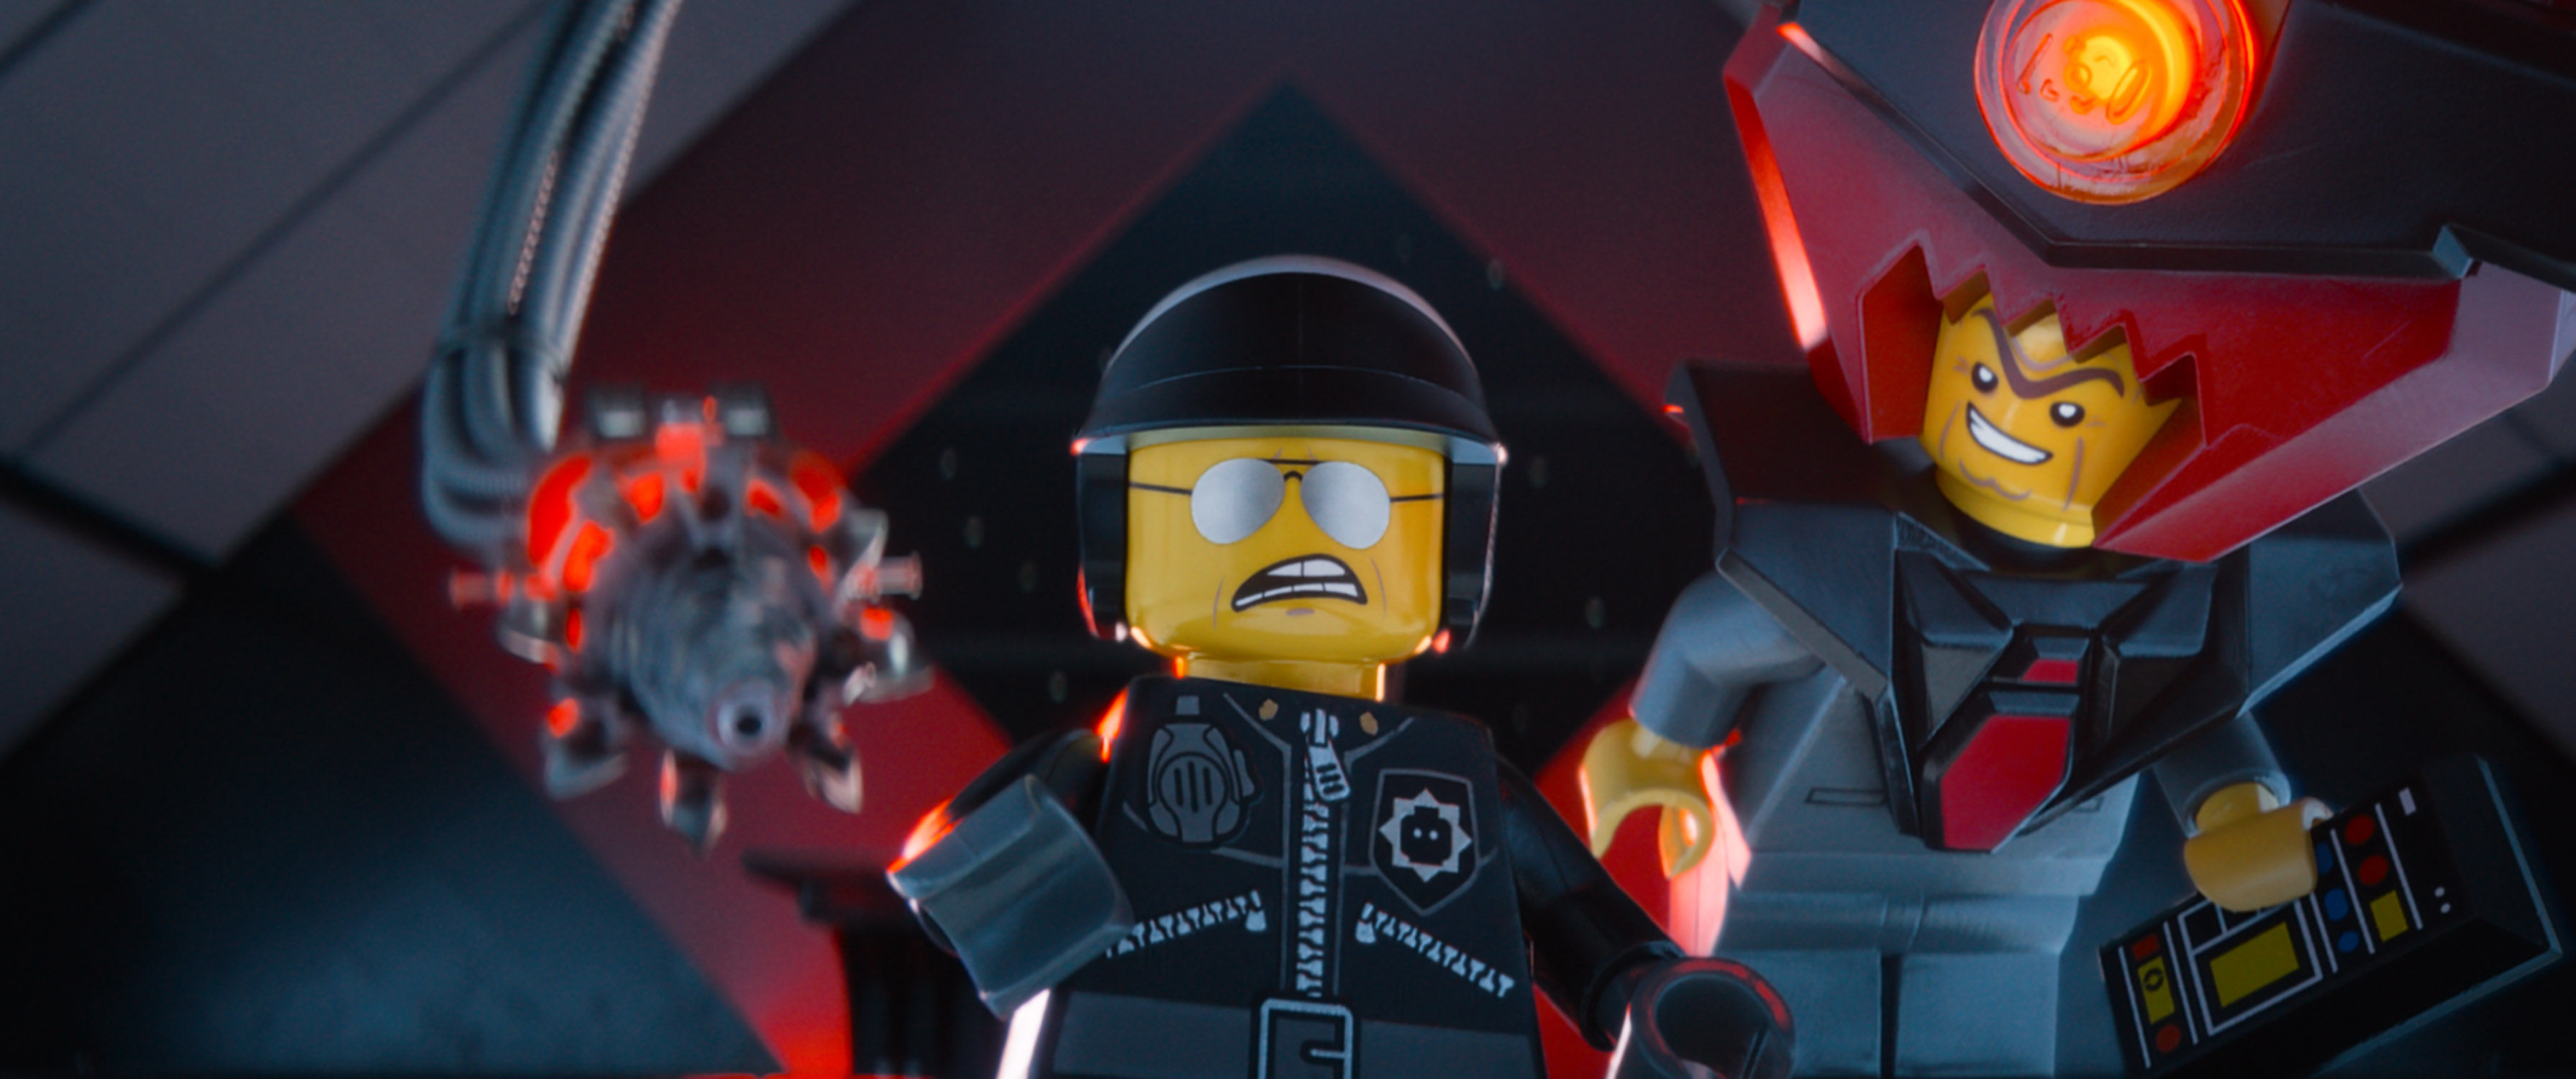 the-lego-movie-15.jpg